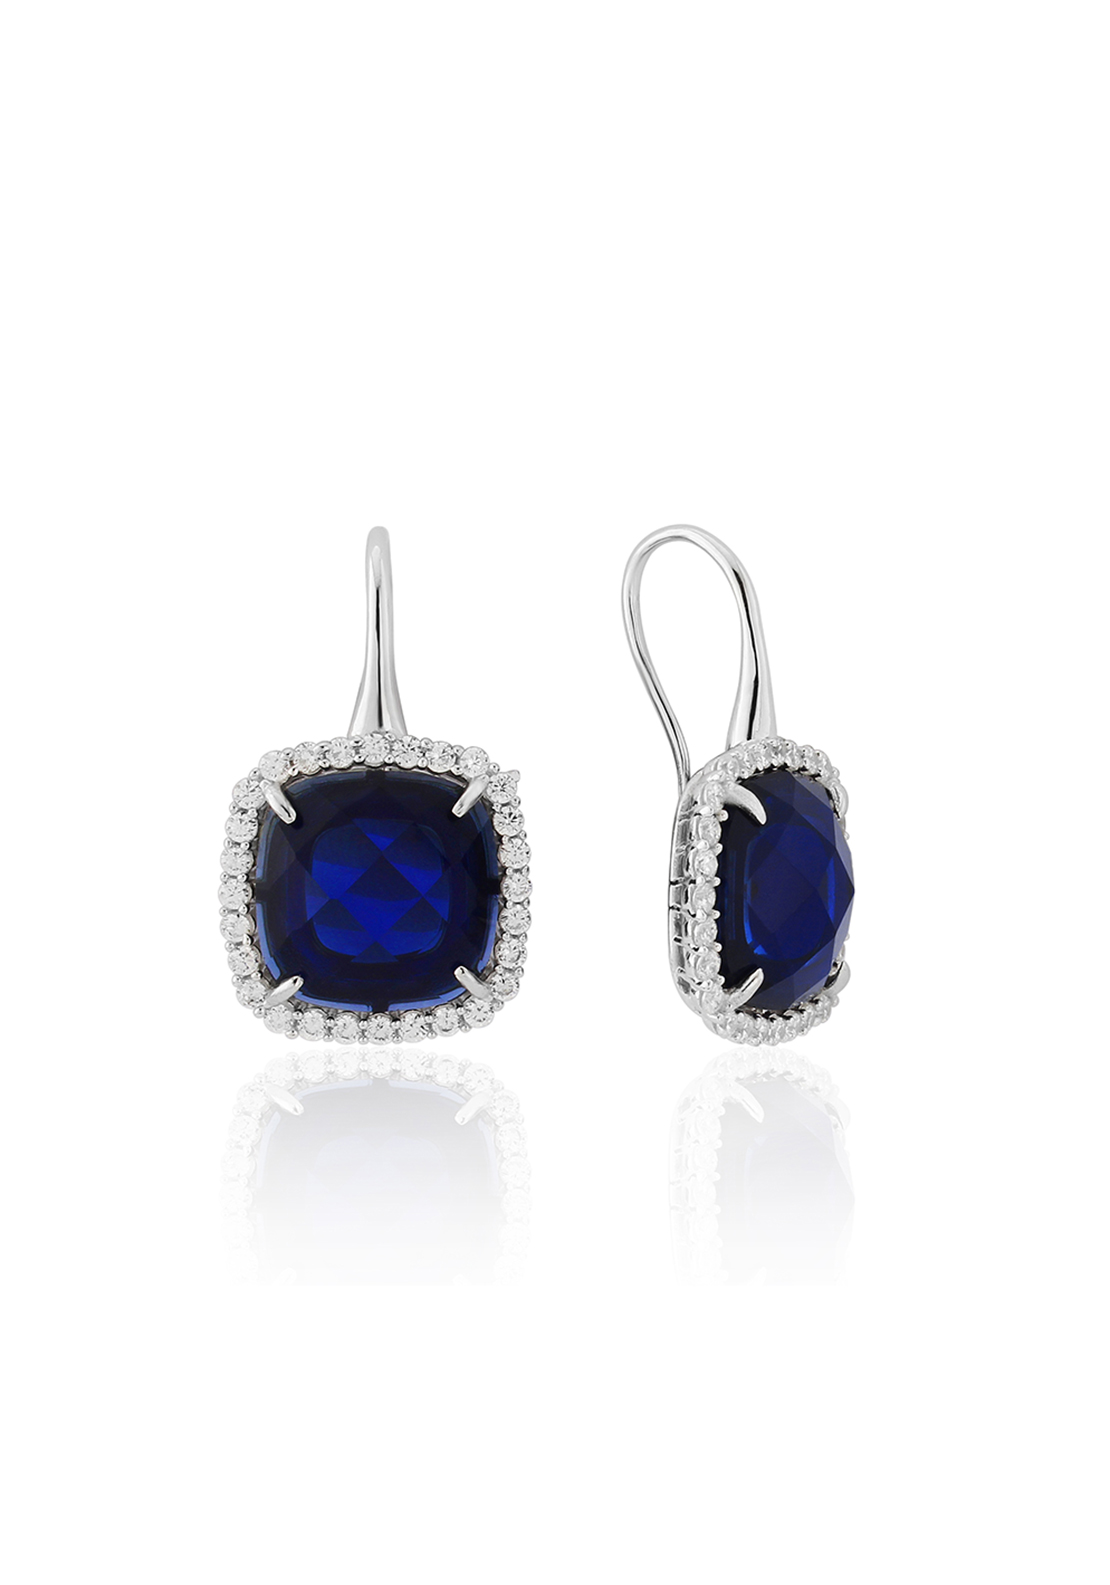 Waterford Crystal Faux Sapphire and Pave Drop Earrings, Silver